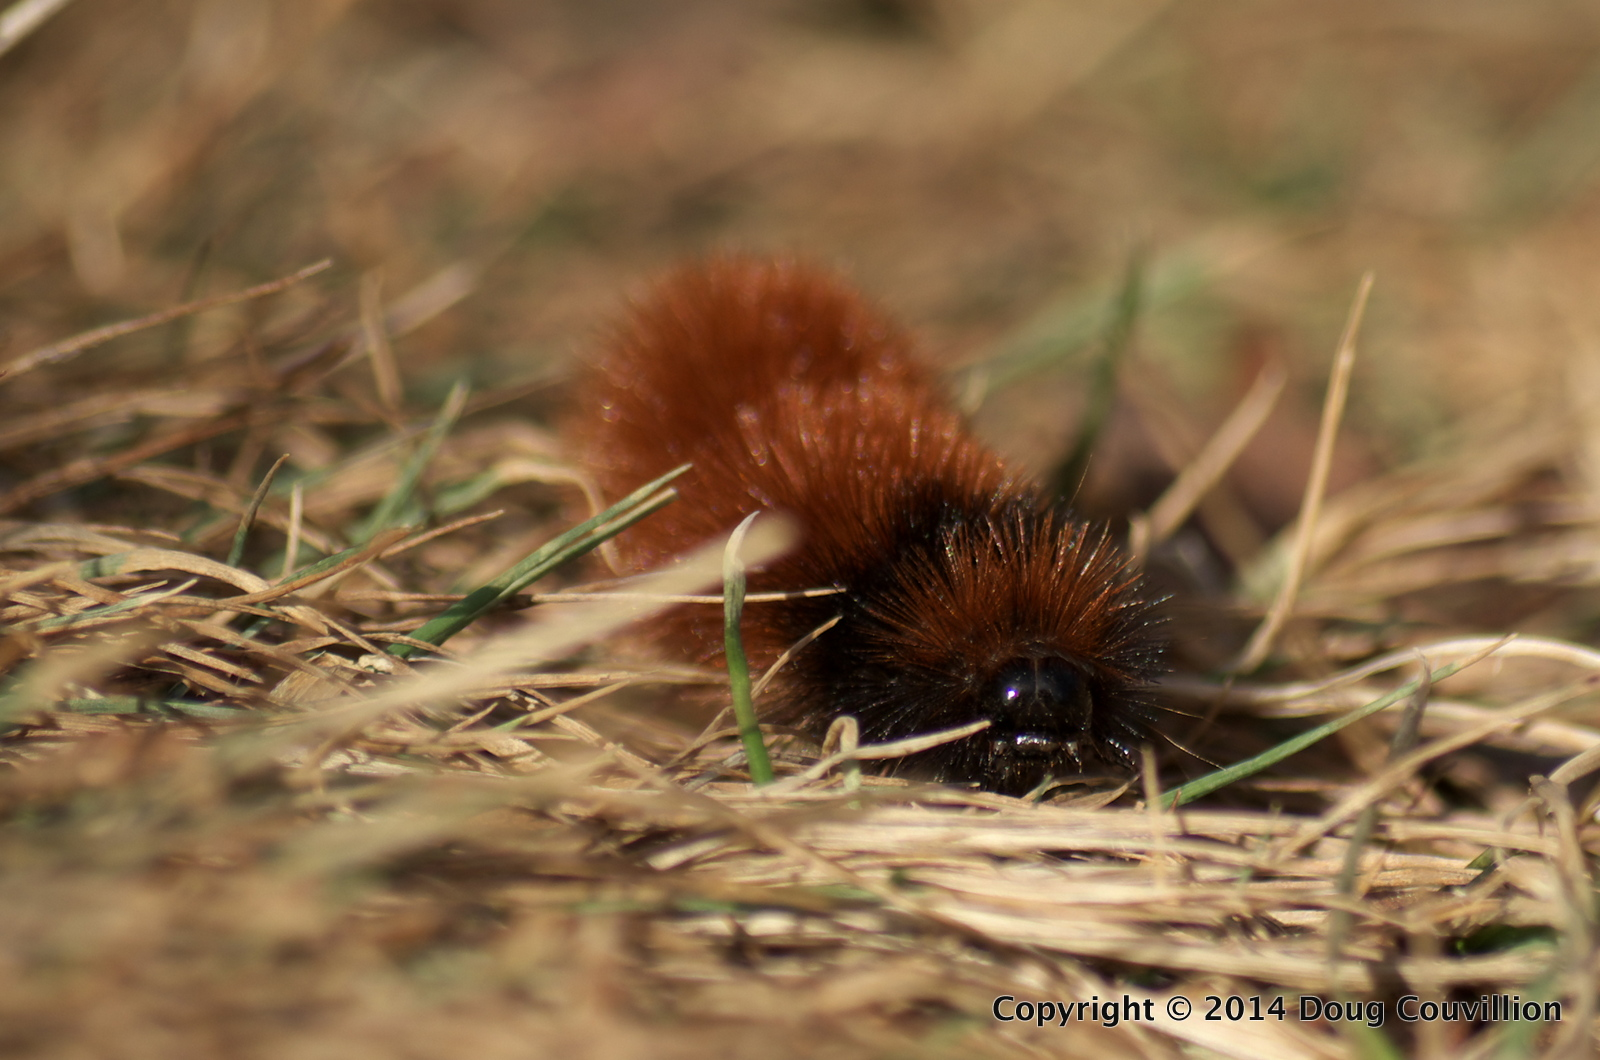 photograph of a wooly bugger or wooly bear caterpillar